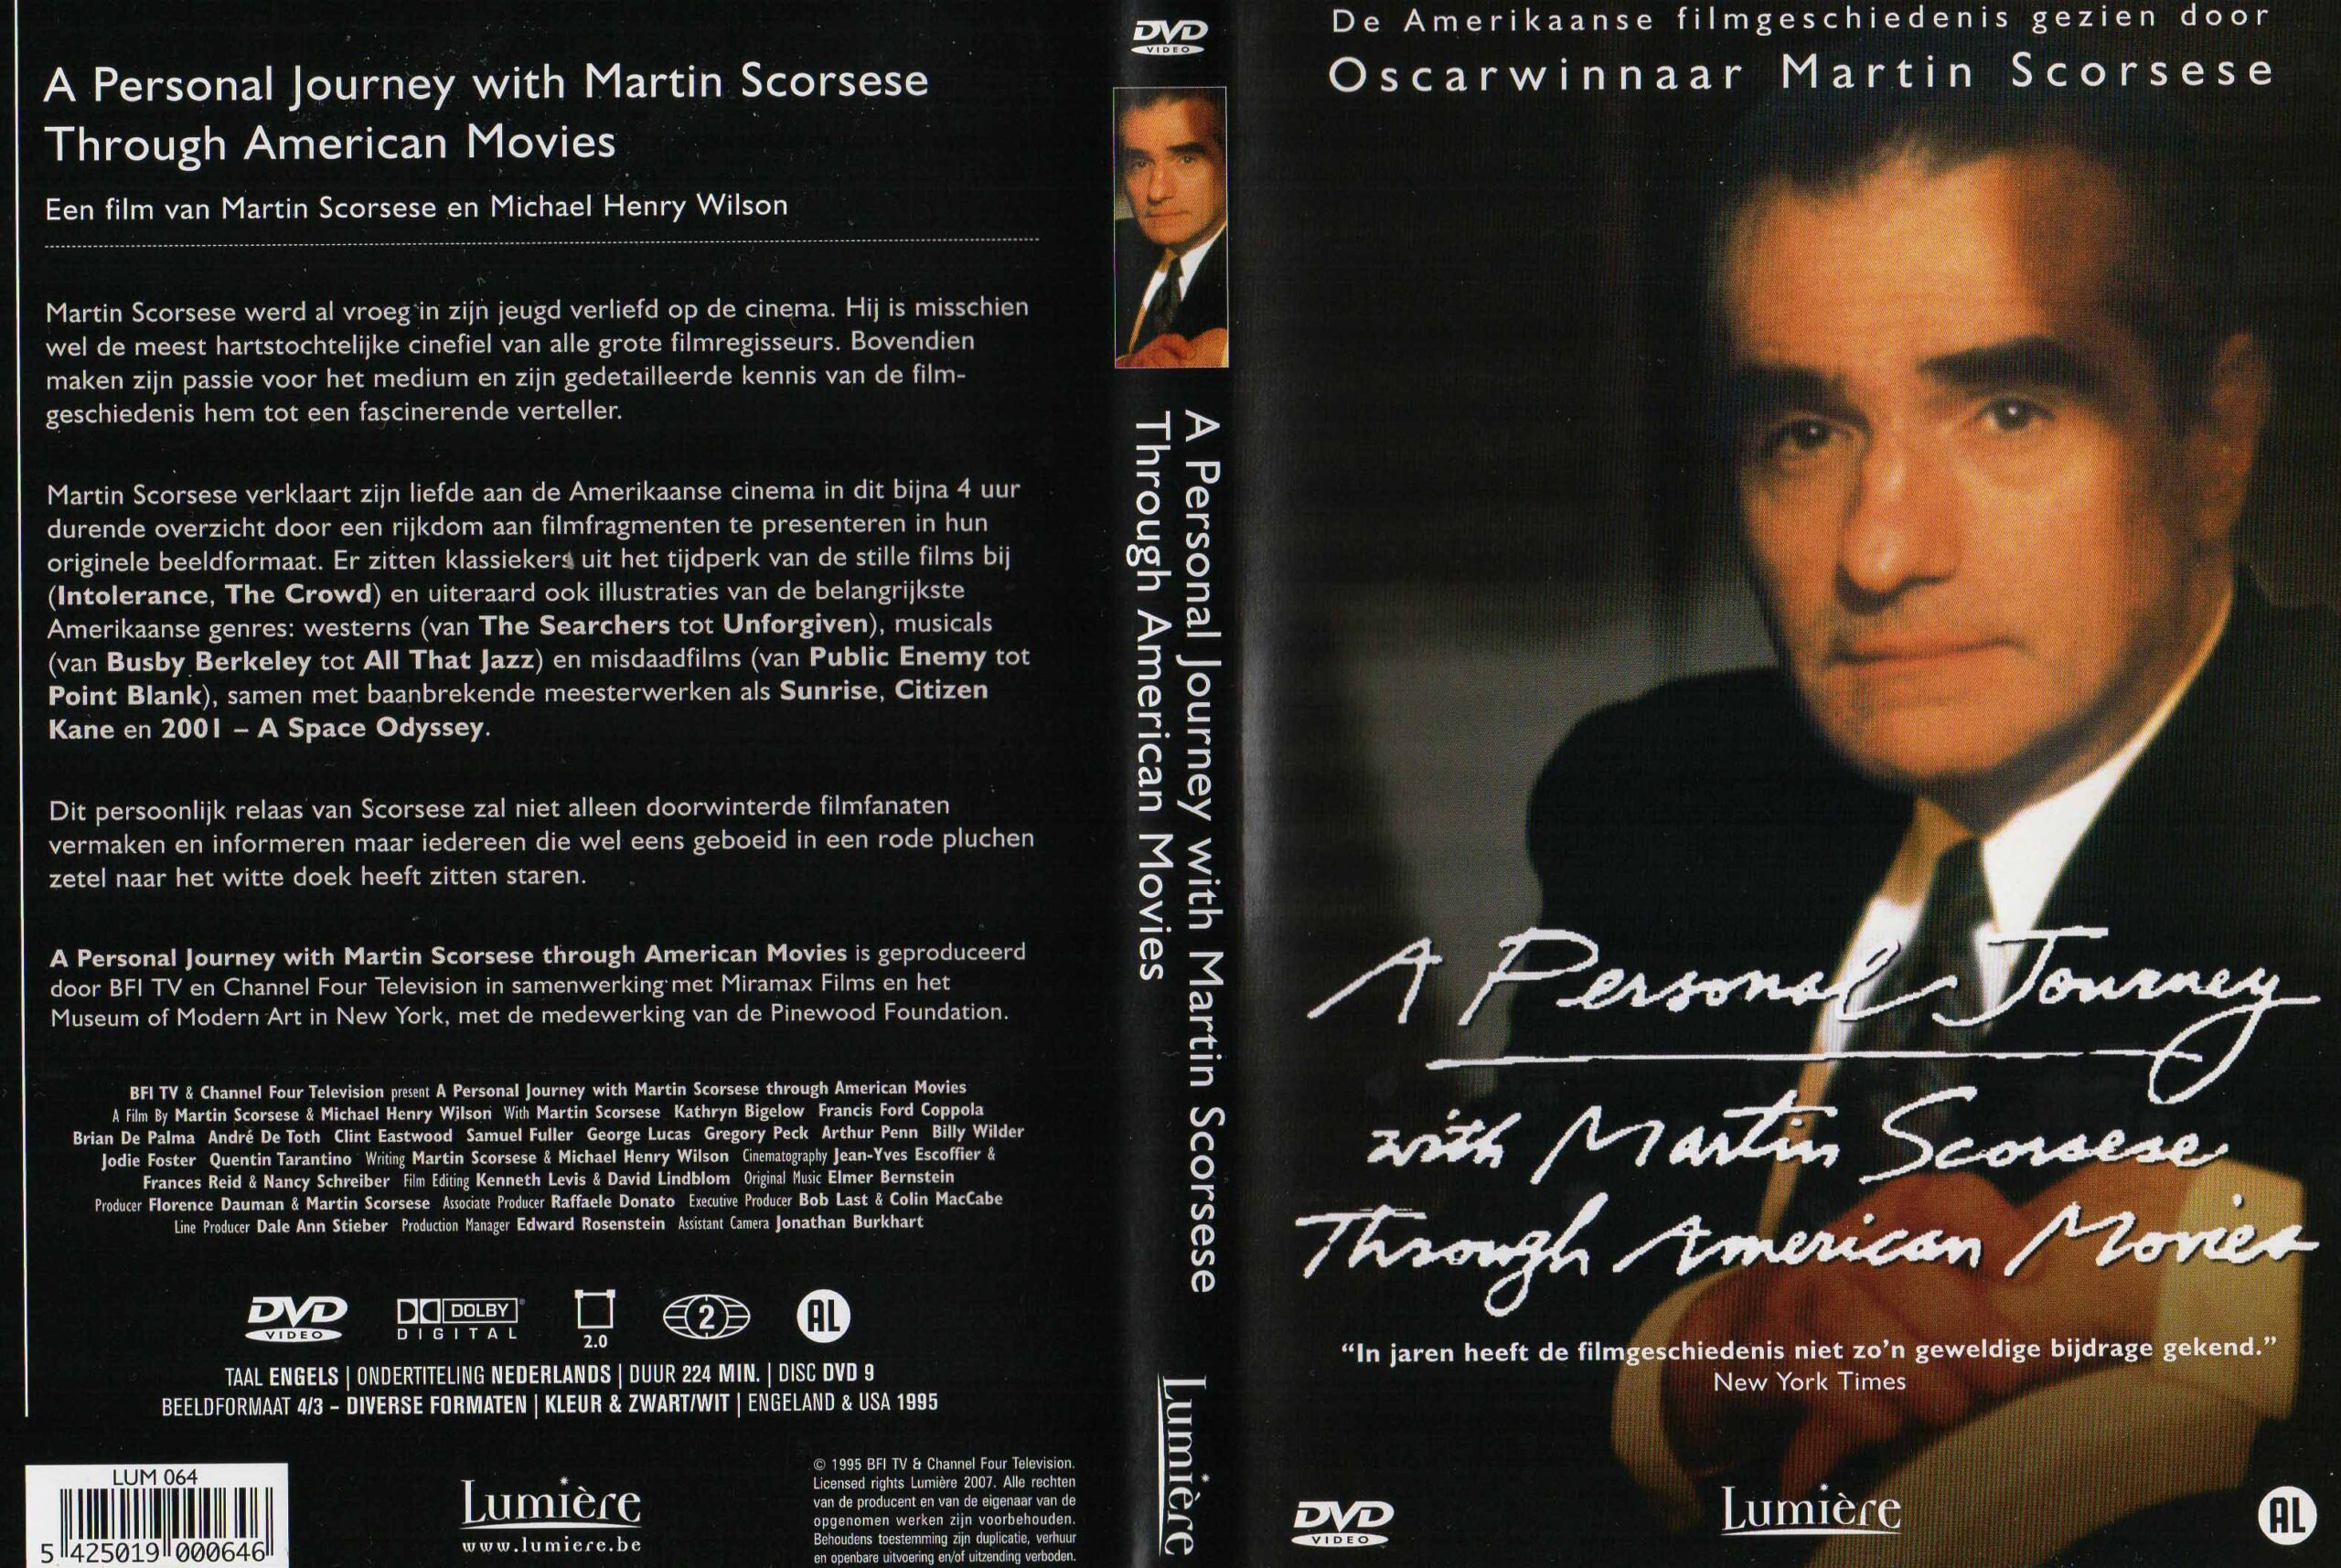 personal-journey-dvd-scaled.jpg